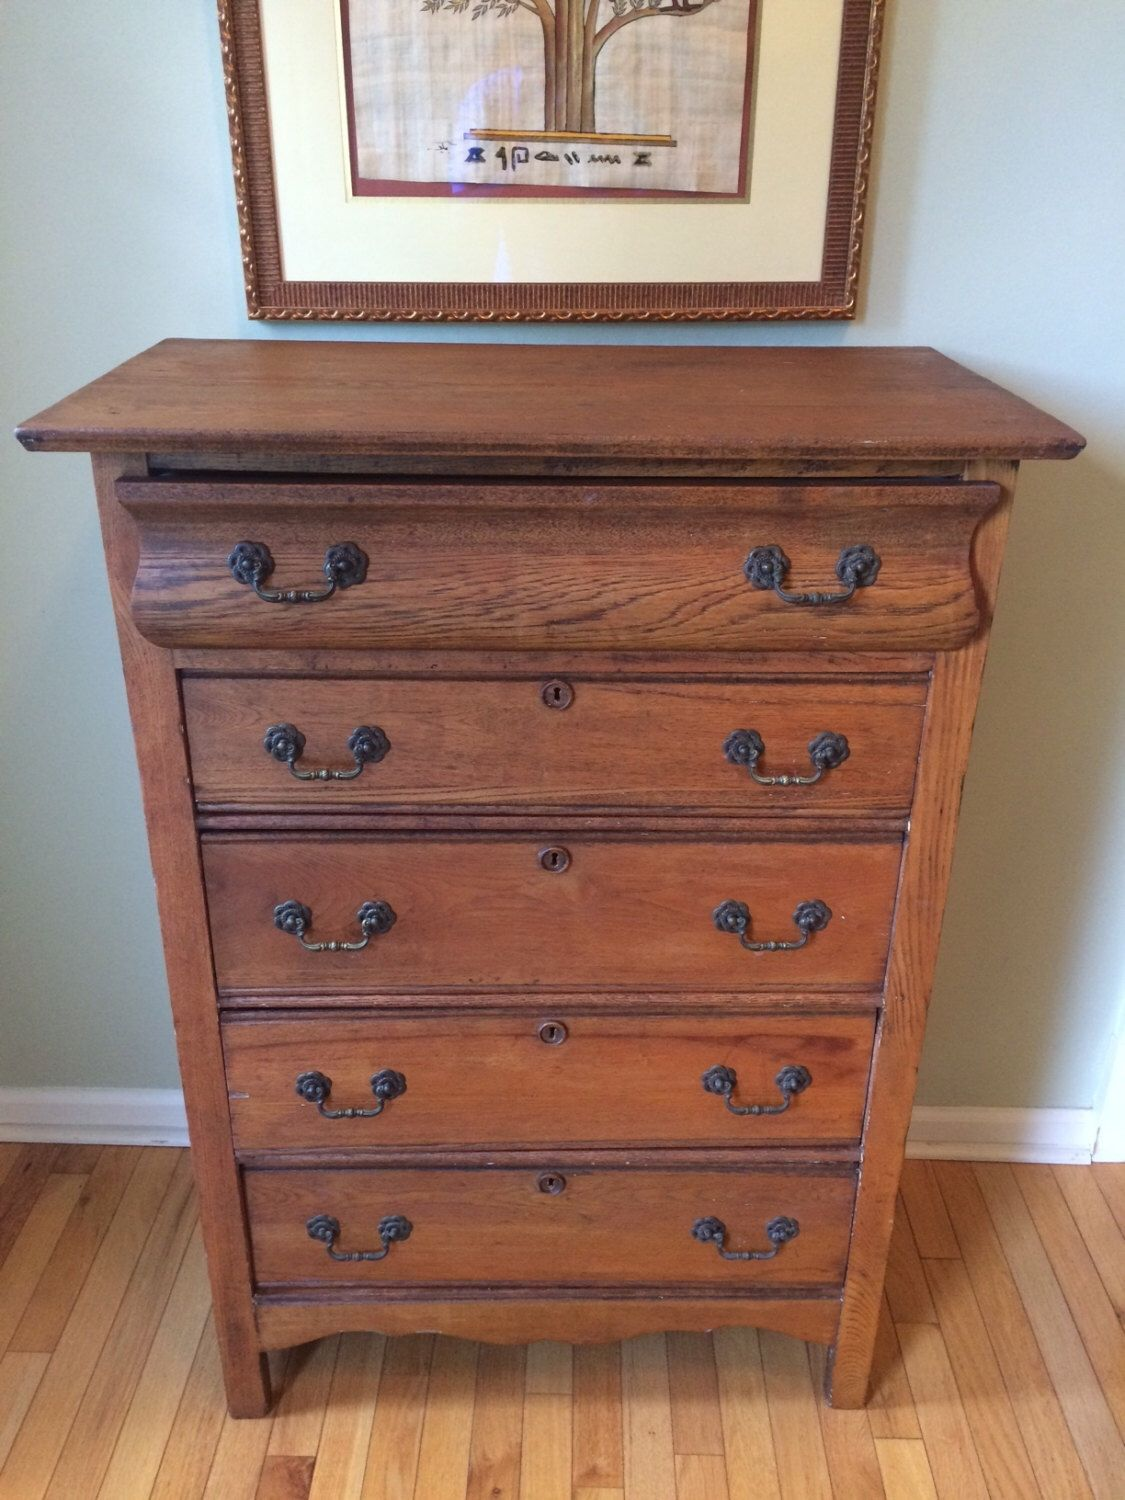 Beautiful Antique Early American Tall Boy Solid Oak Dresser Bureau Chest Of Drawers W Brass